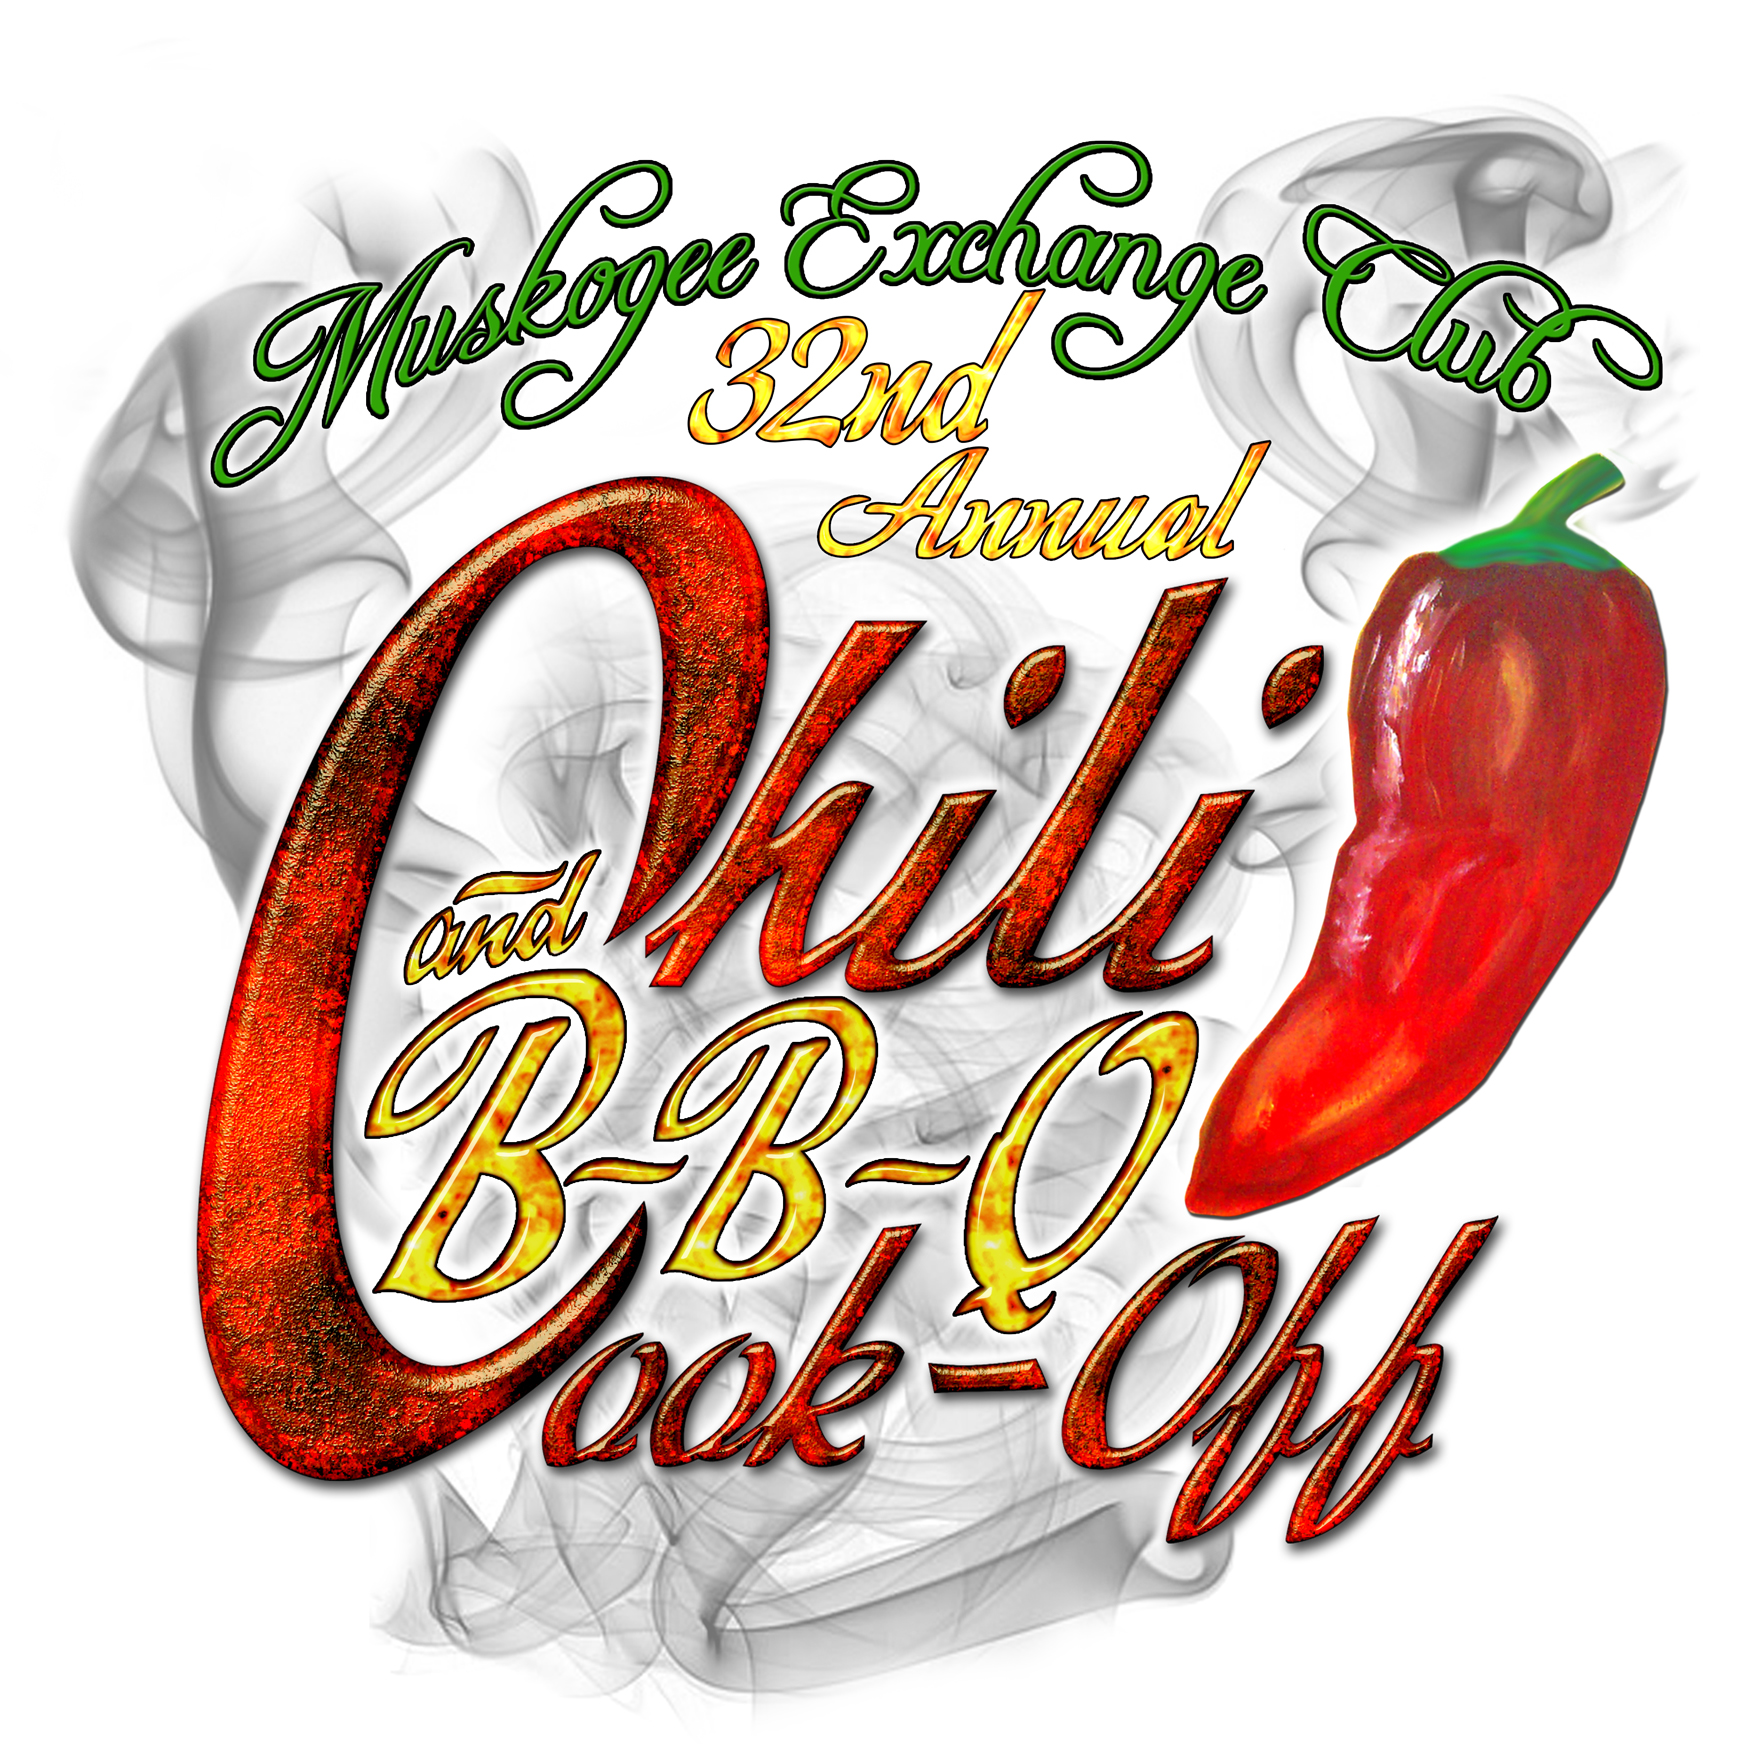 Chili Cookoff - Muskogee Exchange Club